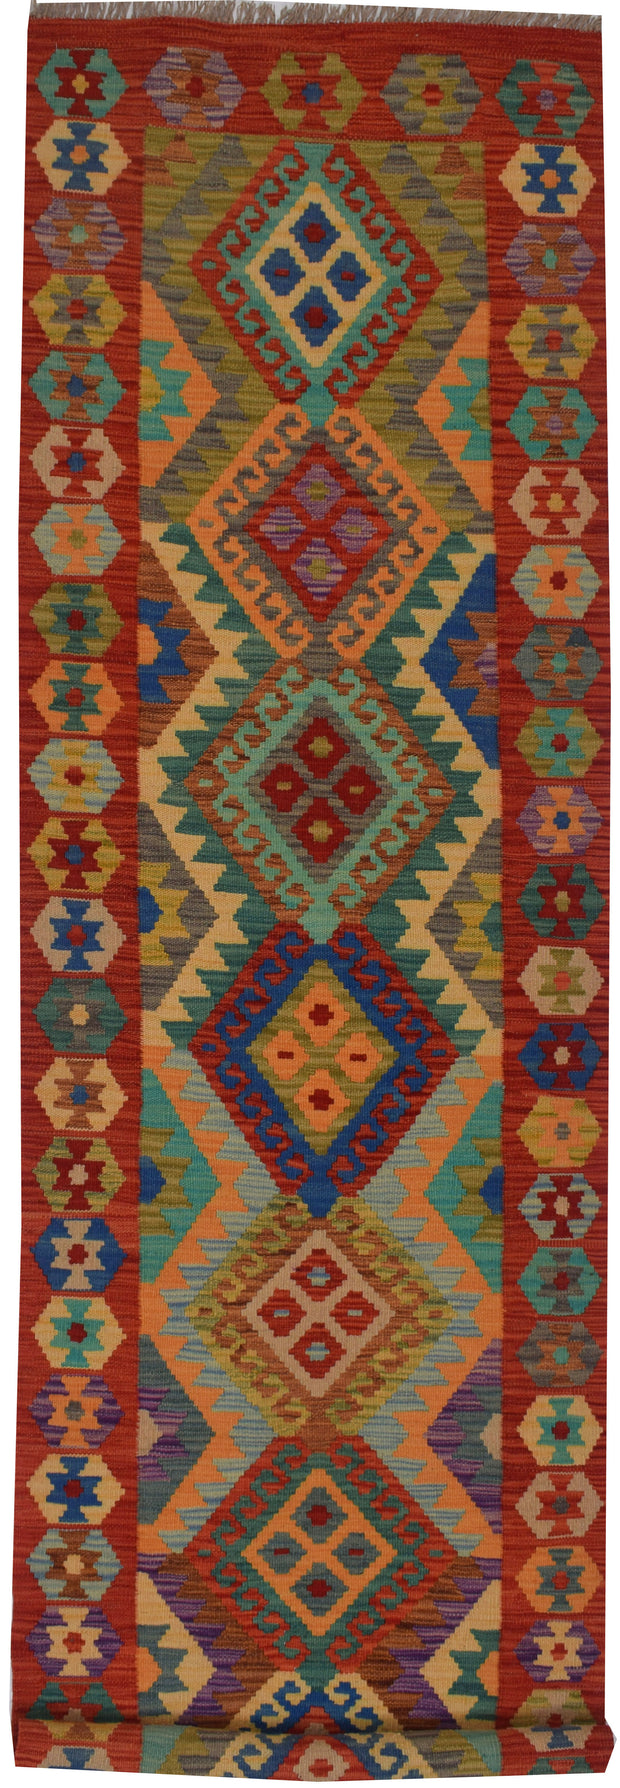 Multi Colored Kilim 2' 7 x 9' 6 - No. 68184 - ALRUG Rug Store